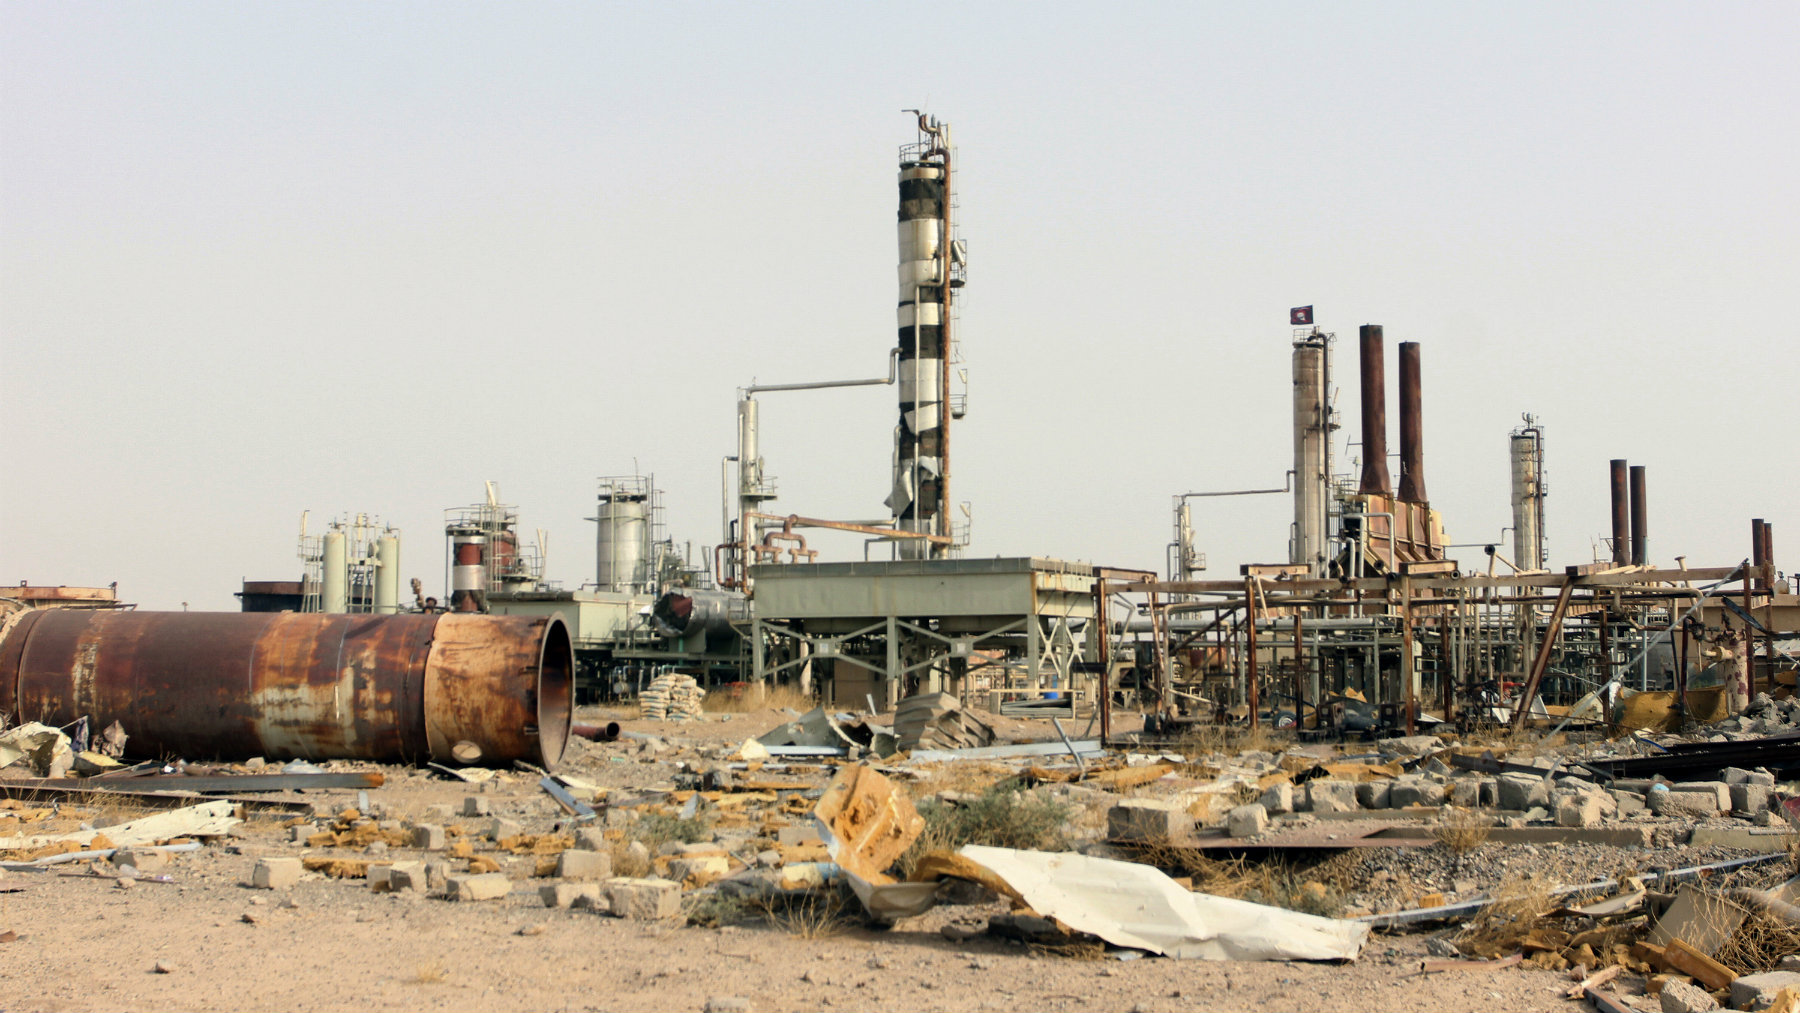 Destruction at Beiji oil refinery during the military operations, some 250 kilometers (155 miles) north of Baghdad, Iraq